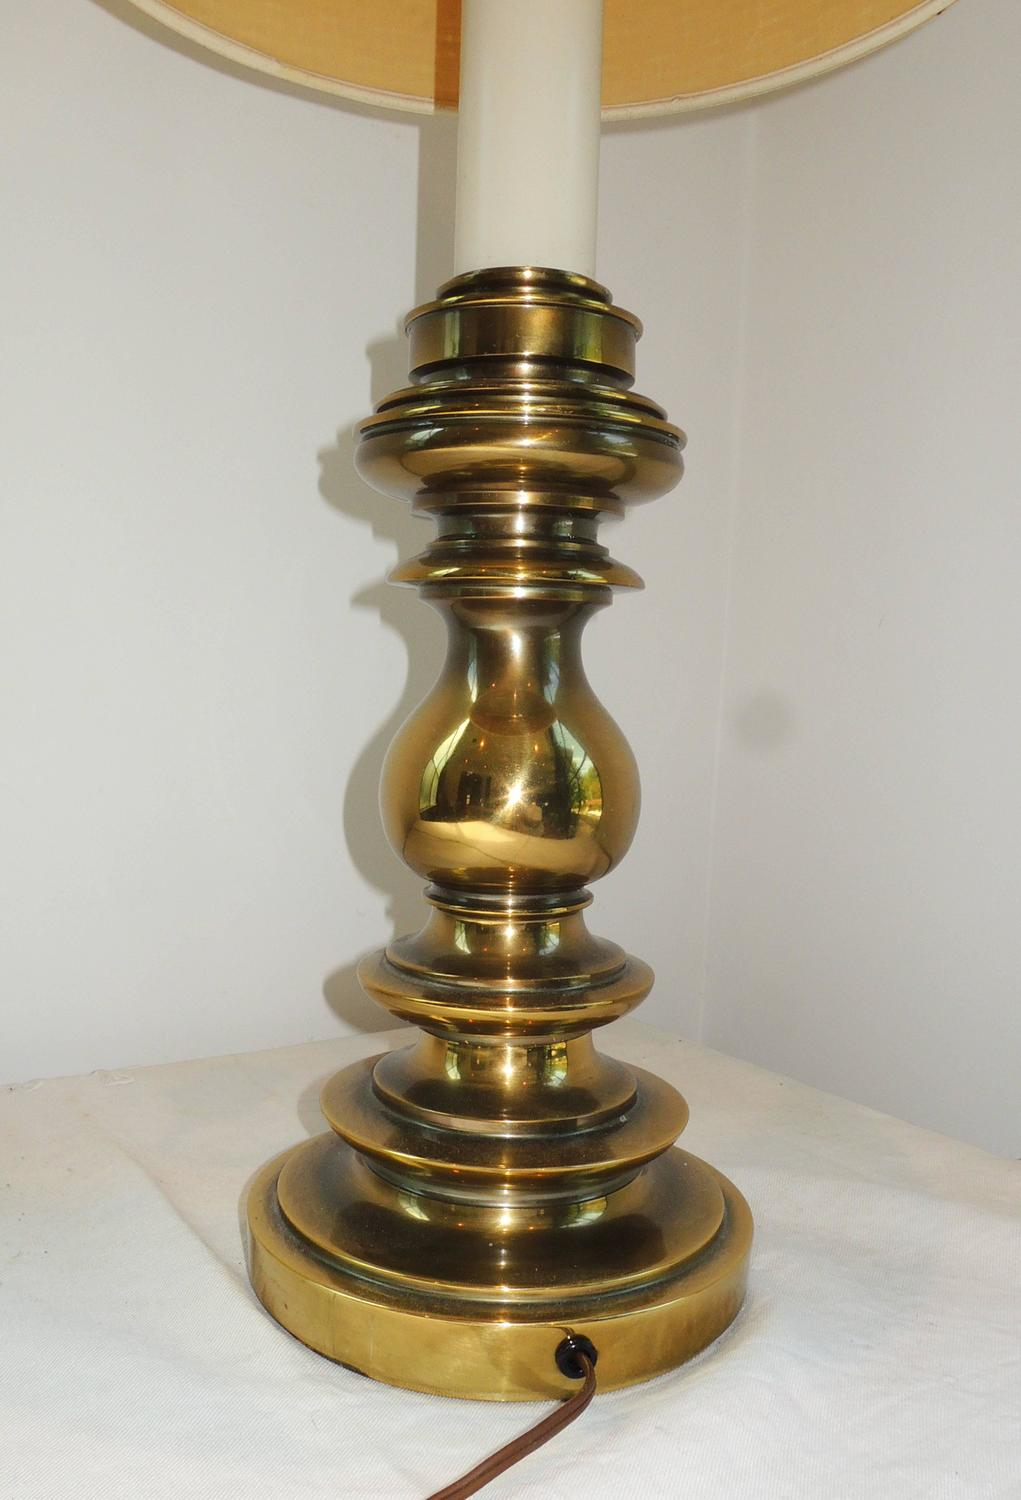 Brass Candlestick Stiffel Table Lamp For Sale at 1stdibs